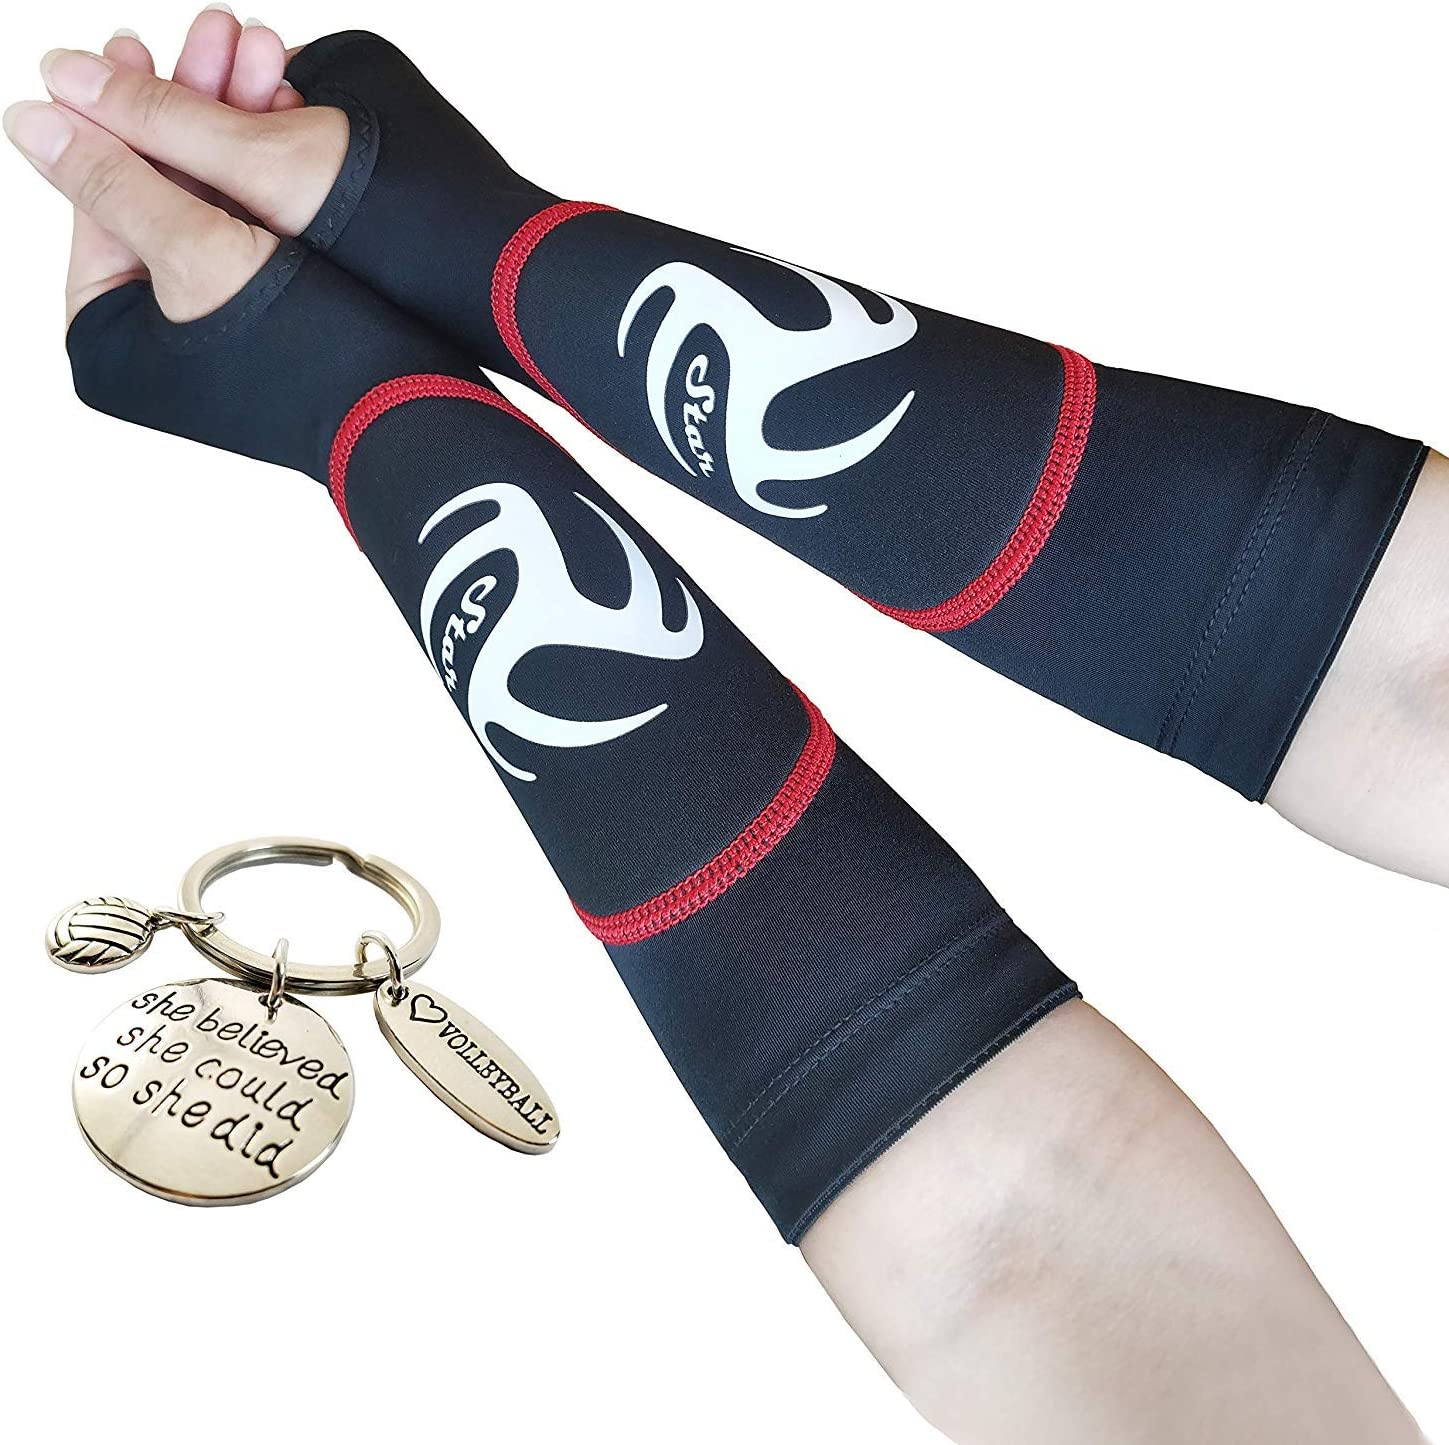 Volleyball Padded Sleeves for Younger Girls and Boys - Passing Forearm Sleeves with Protection Pad (Red Padded Sleeves with Thumbhole, 10) : Sports & Outdoors